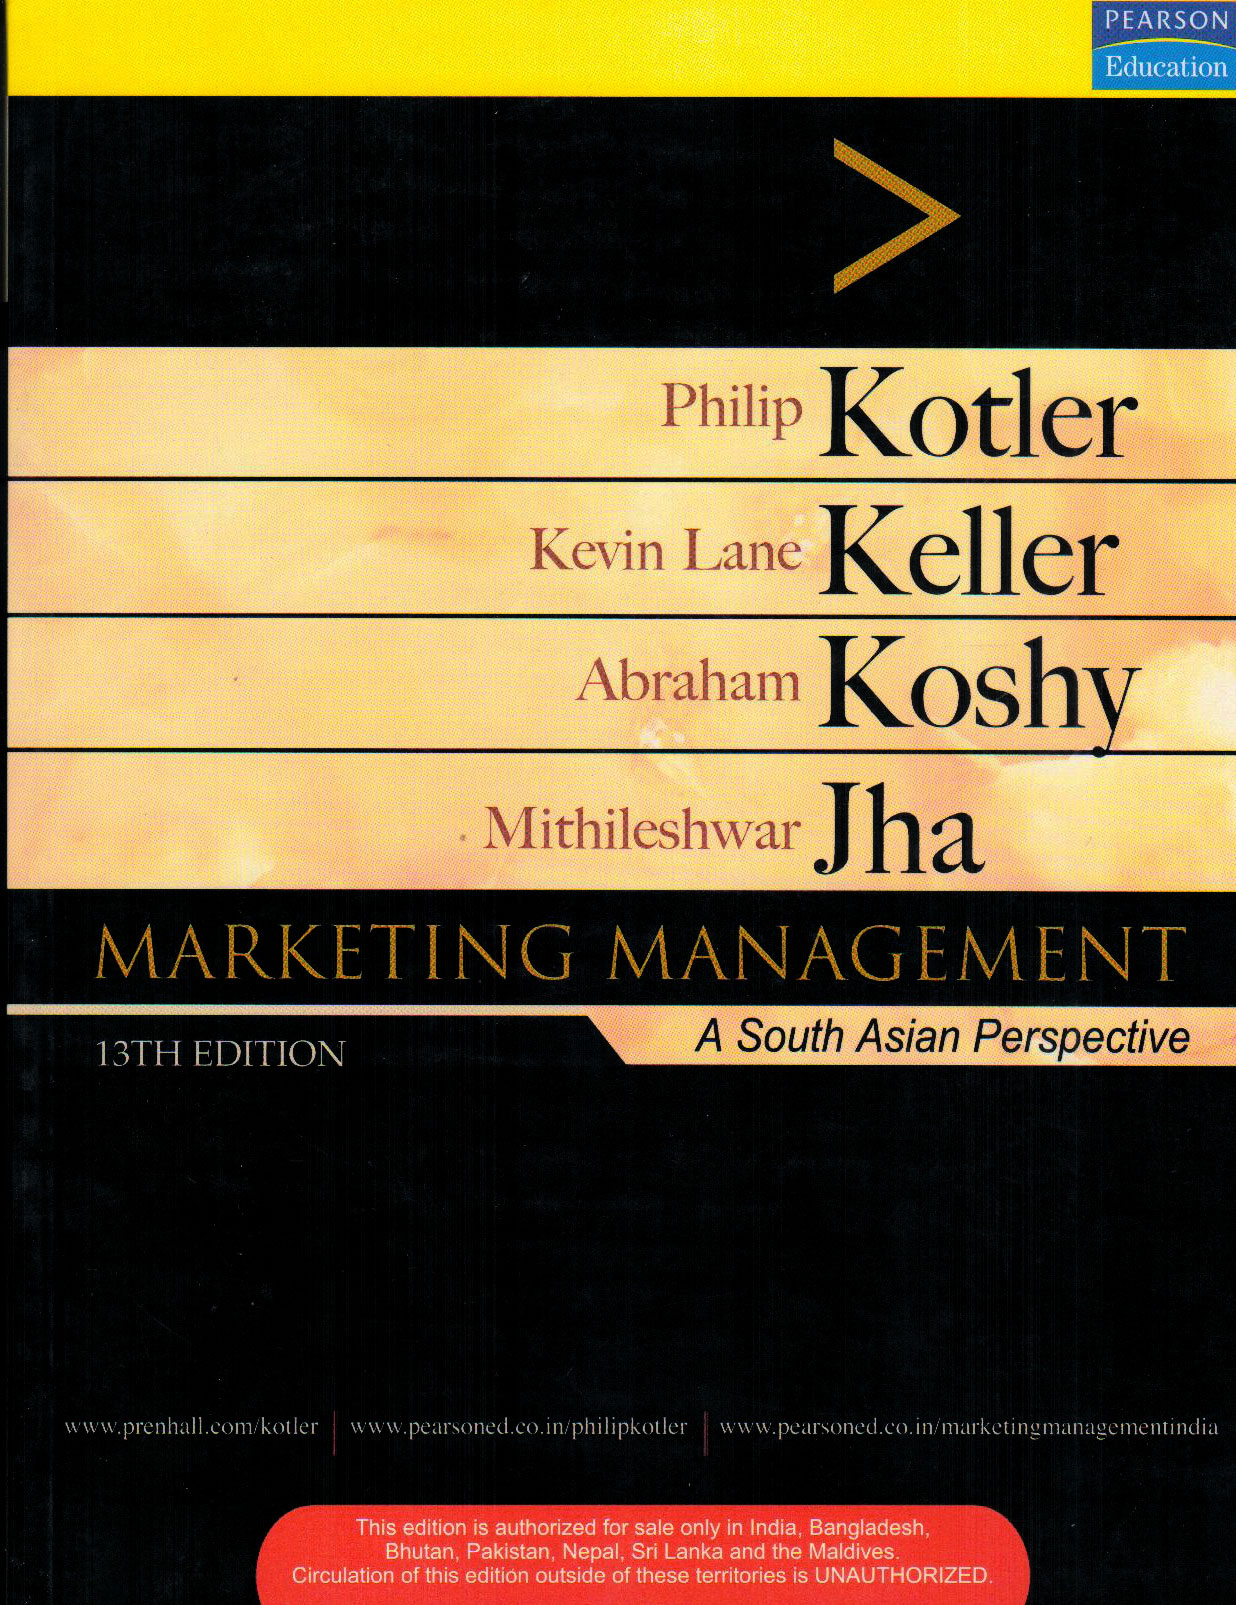 Marketing Management A South Asian Perspective 13th Edition